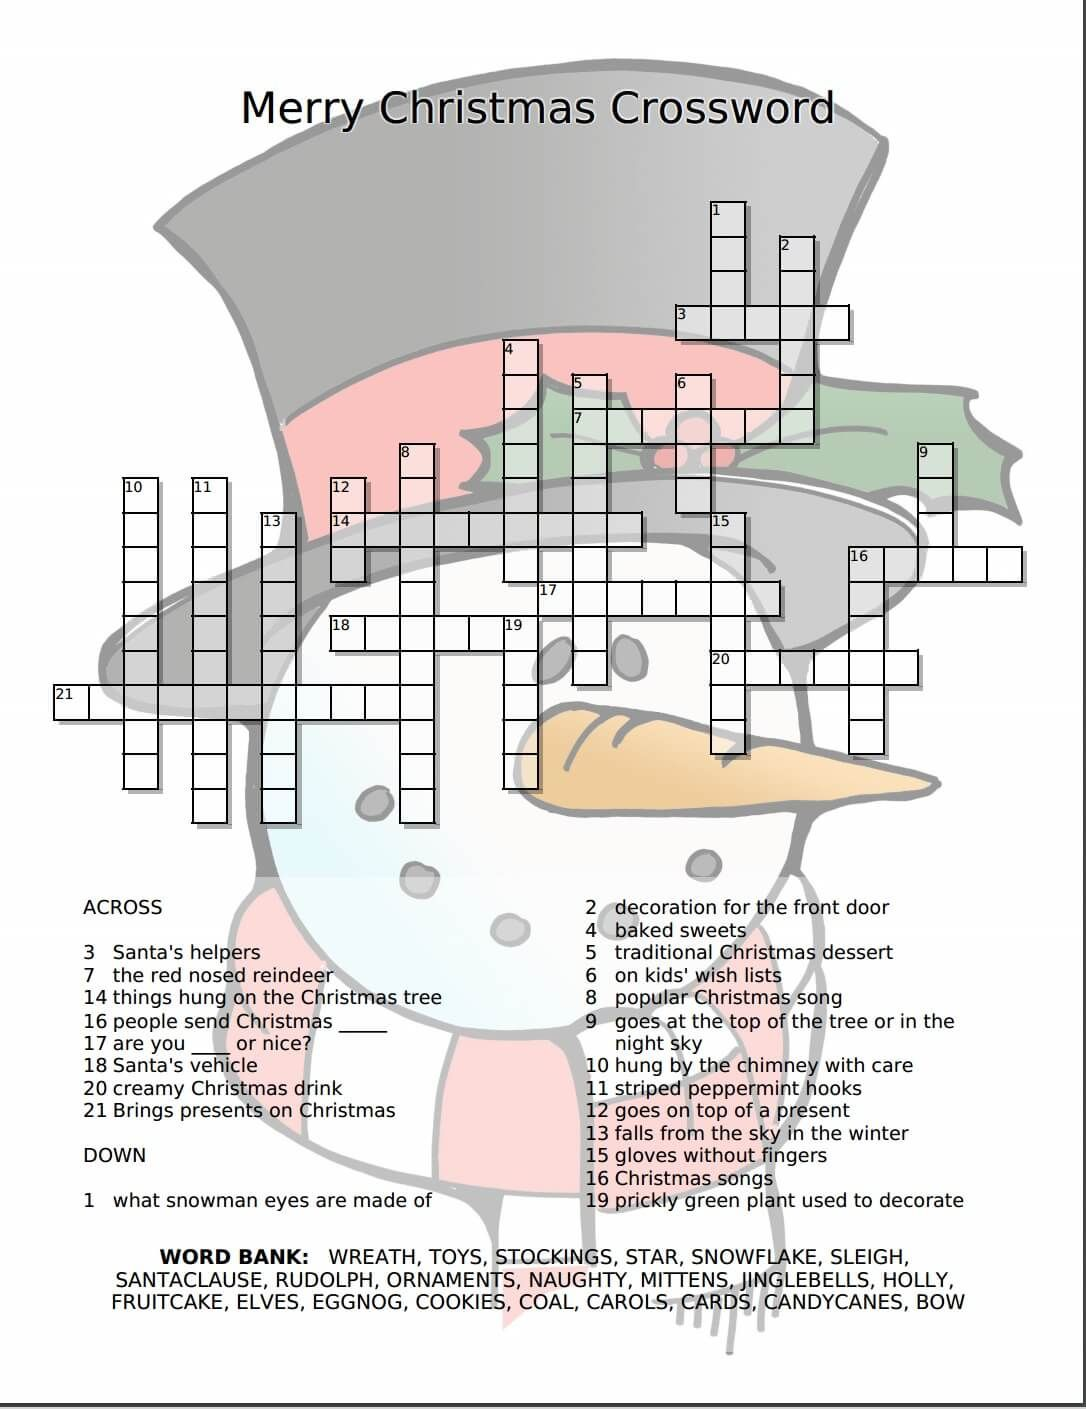 Merry Christmas Crossword Free Printable